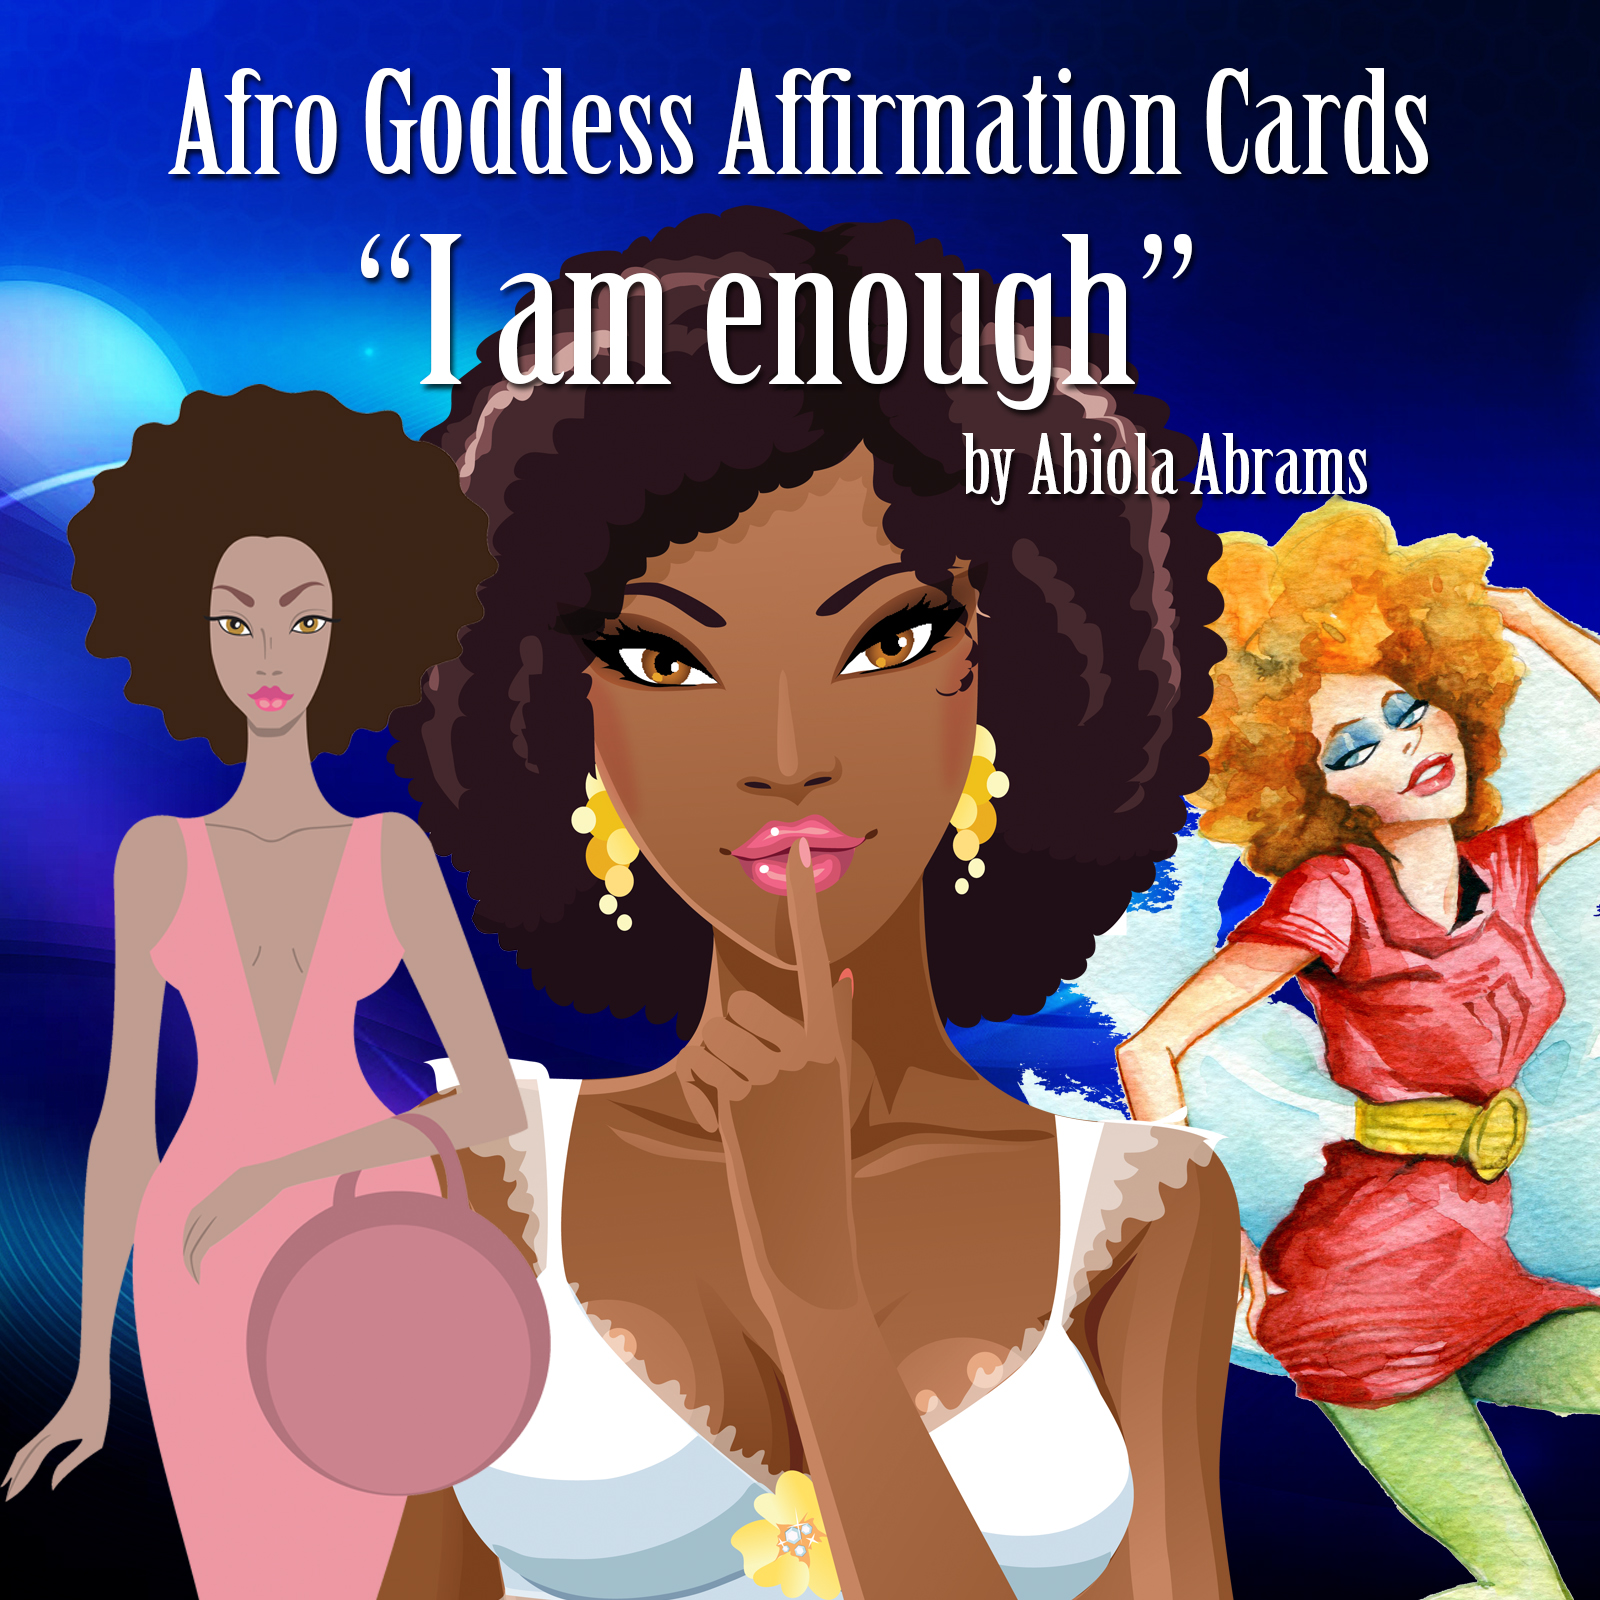 Afro Goddesses - African American Art and Lessons